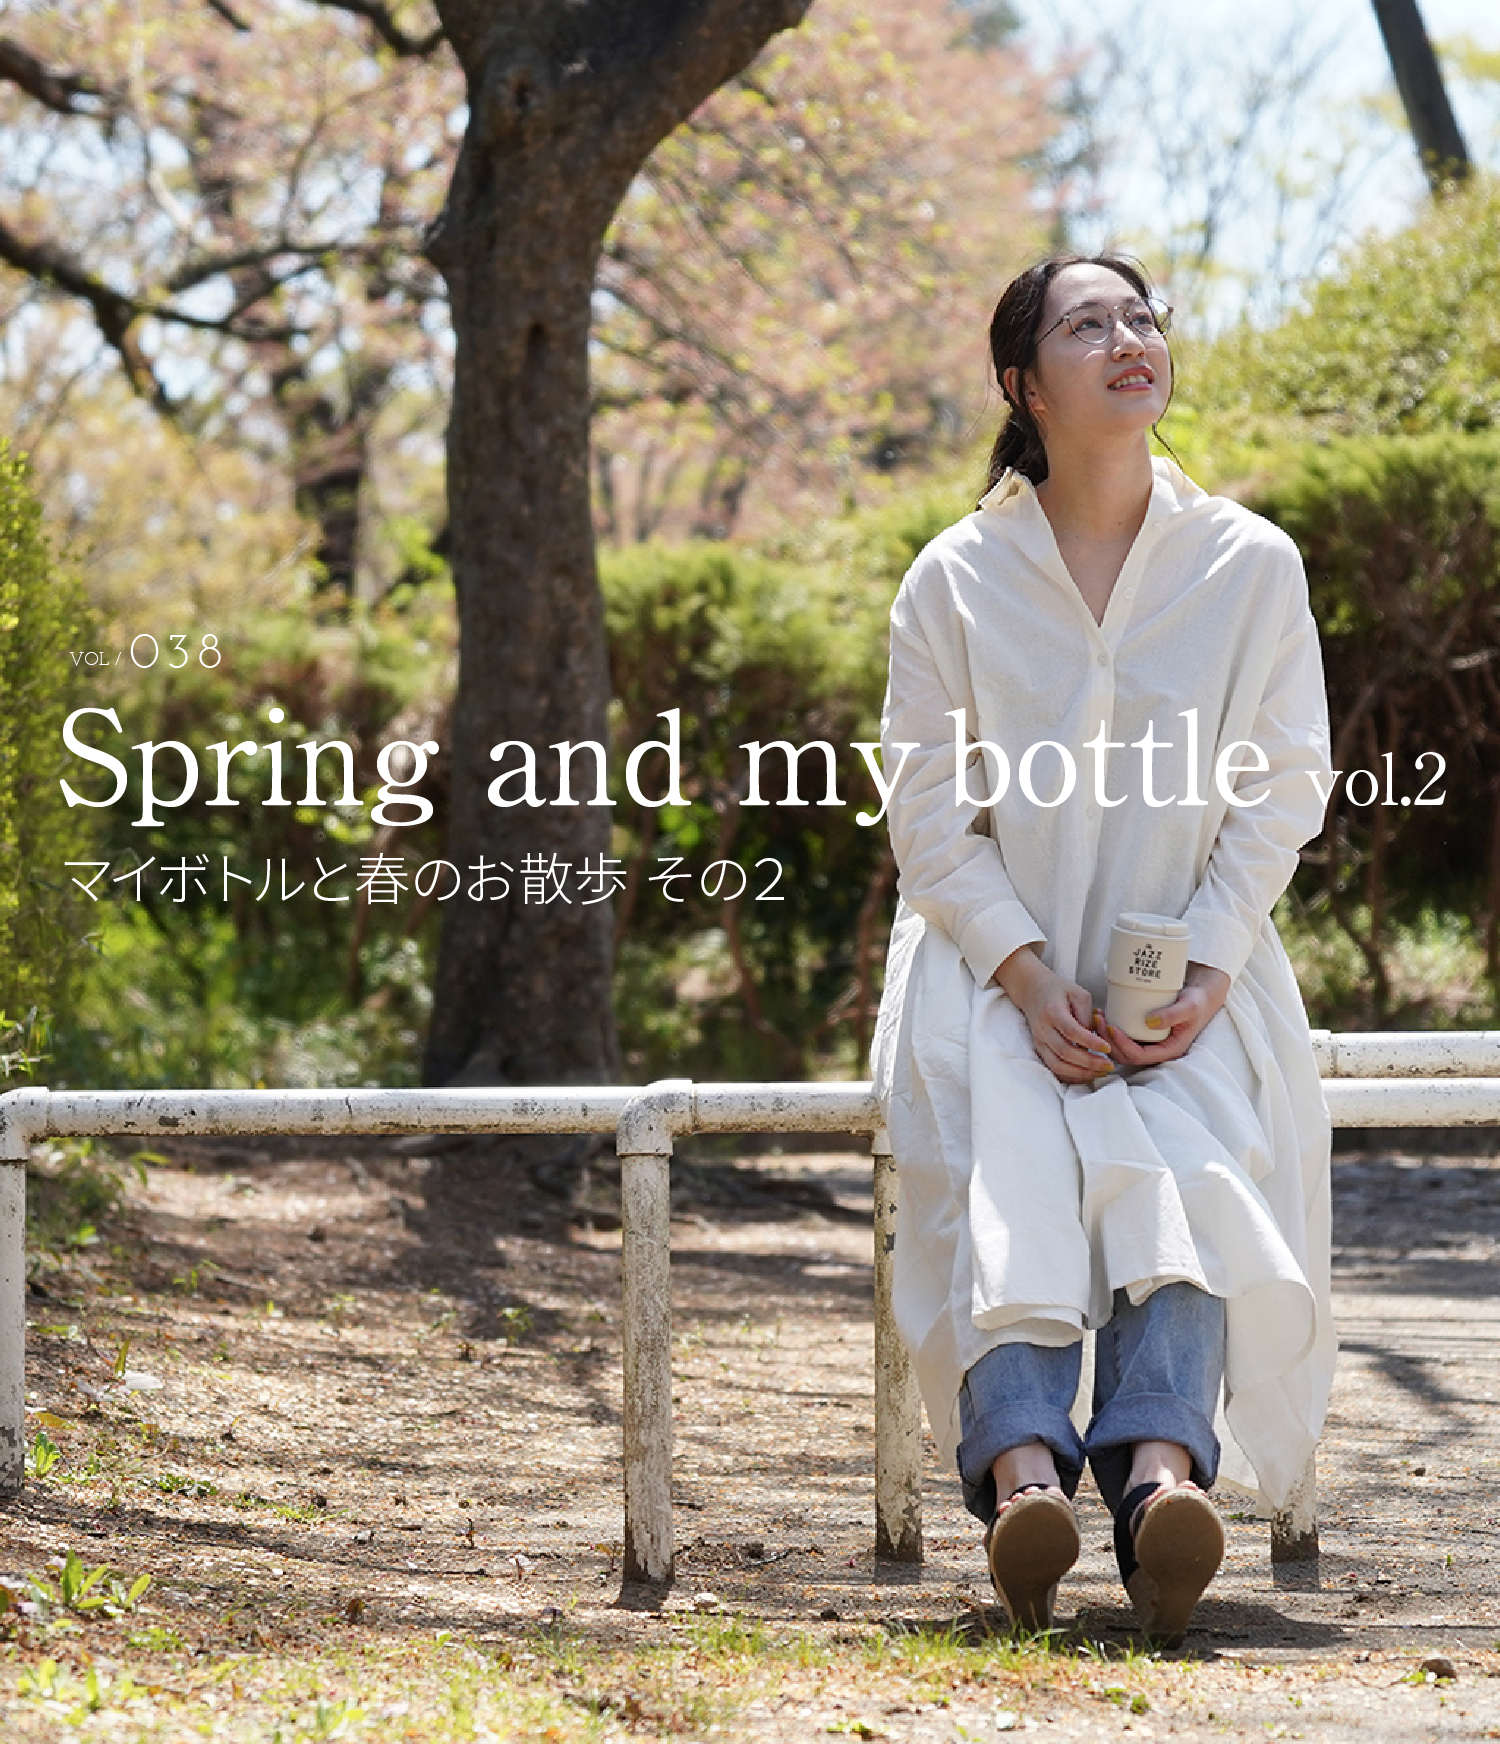 VOL / 038 Spring and my bottle vol.2